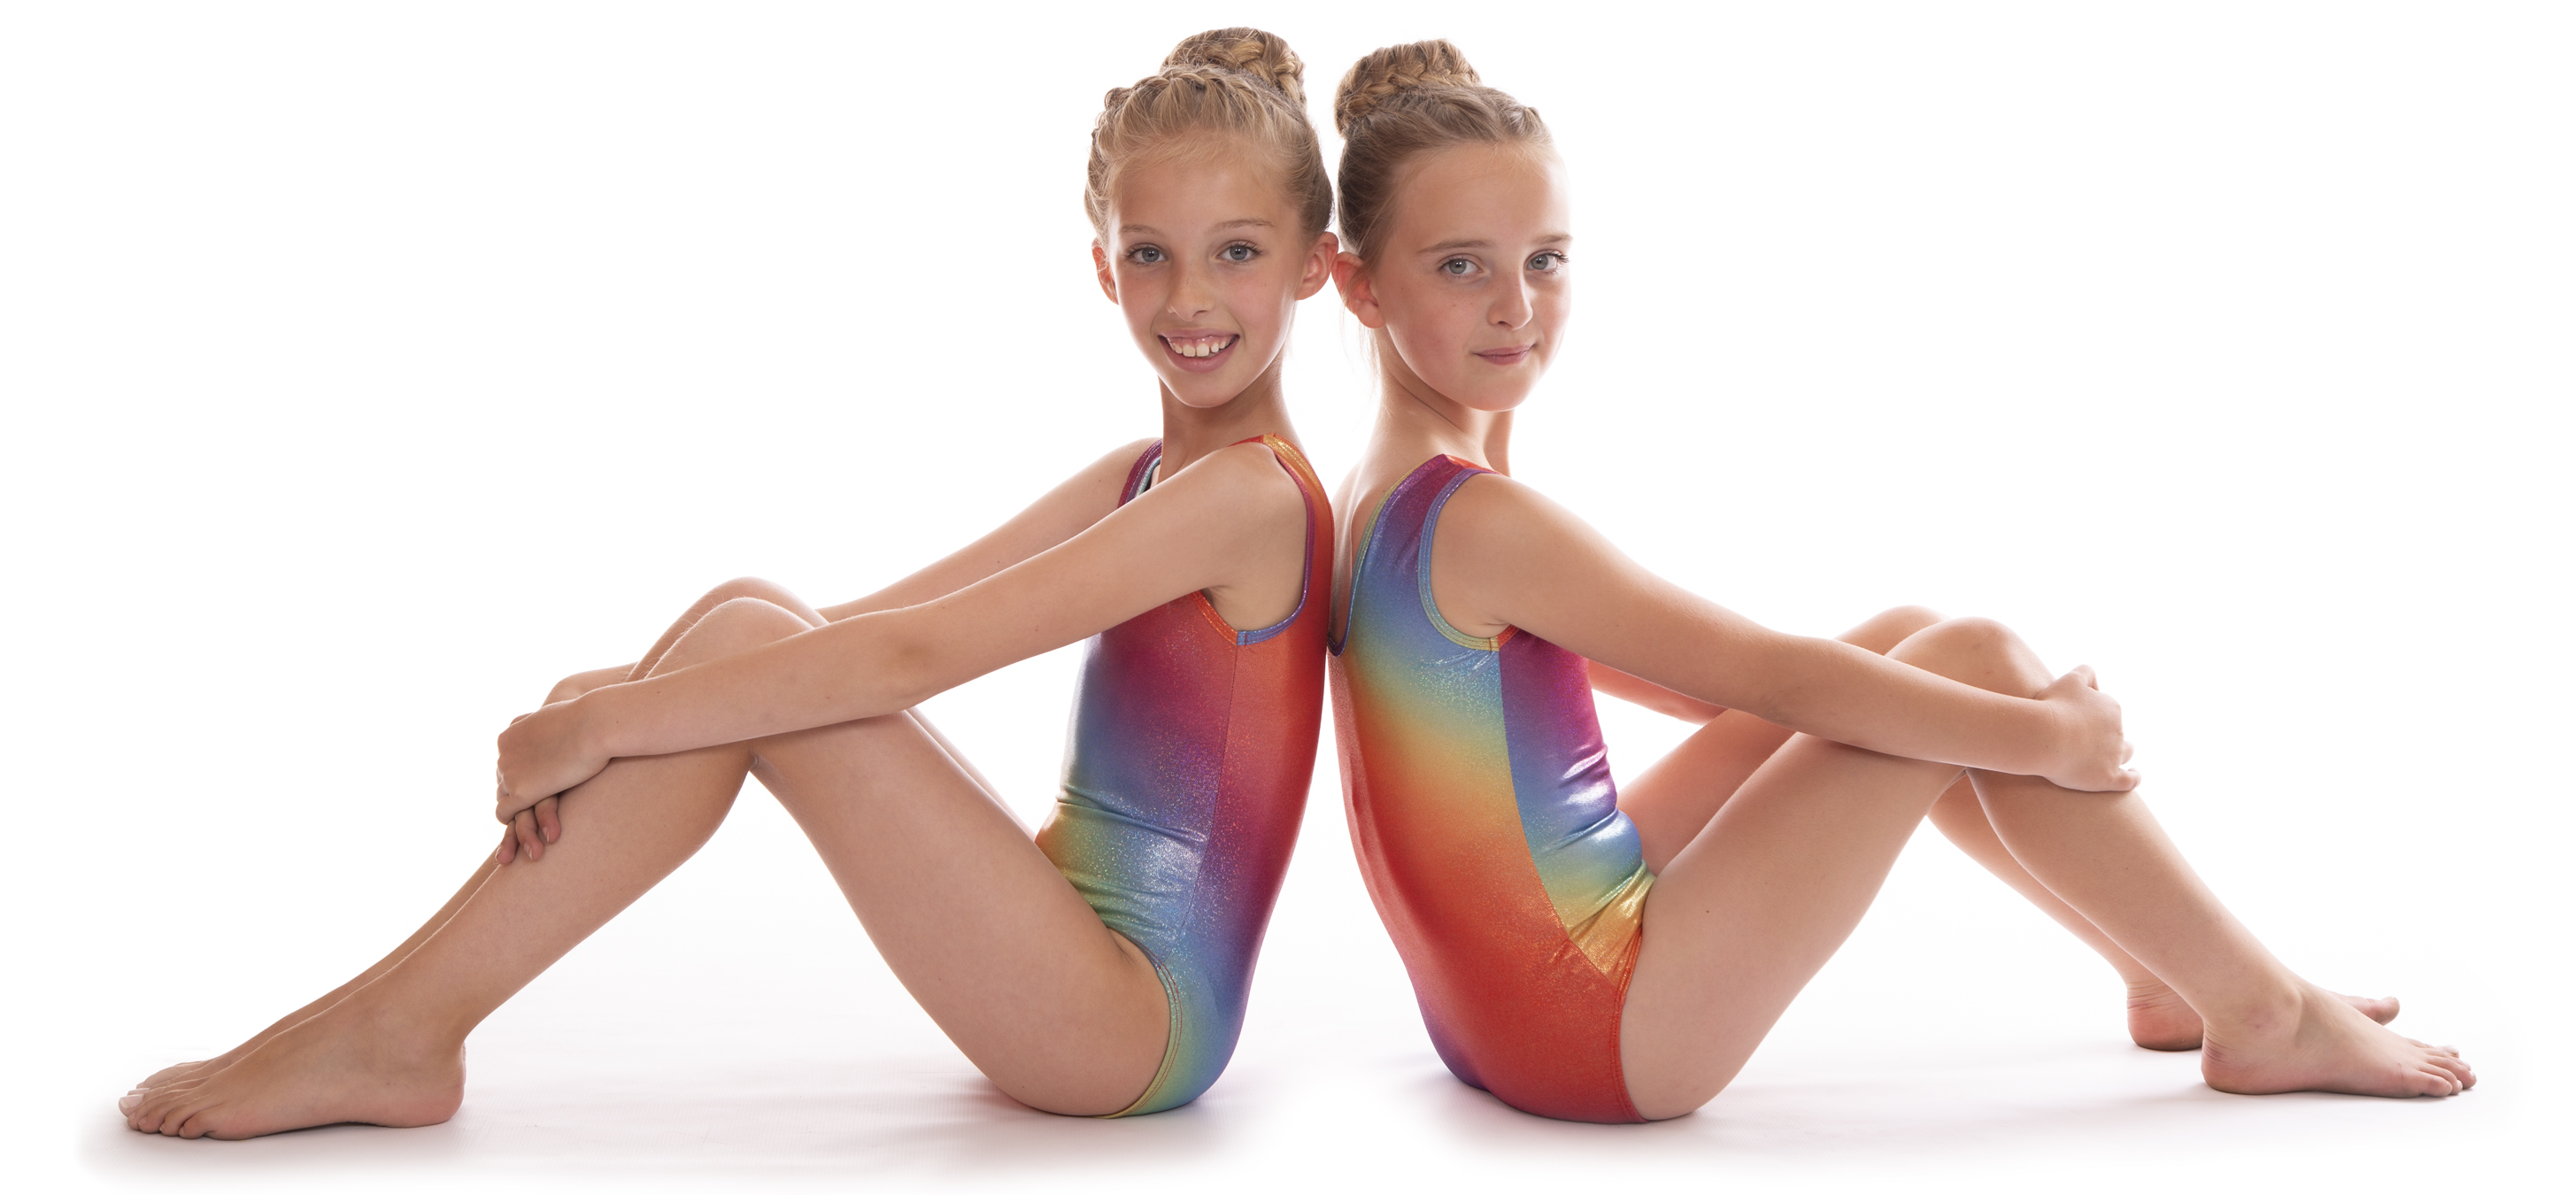 c88359a36 Deluxe Edition  Girls Pink Shiny Metallic Gym Dance Leotard for ...